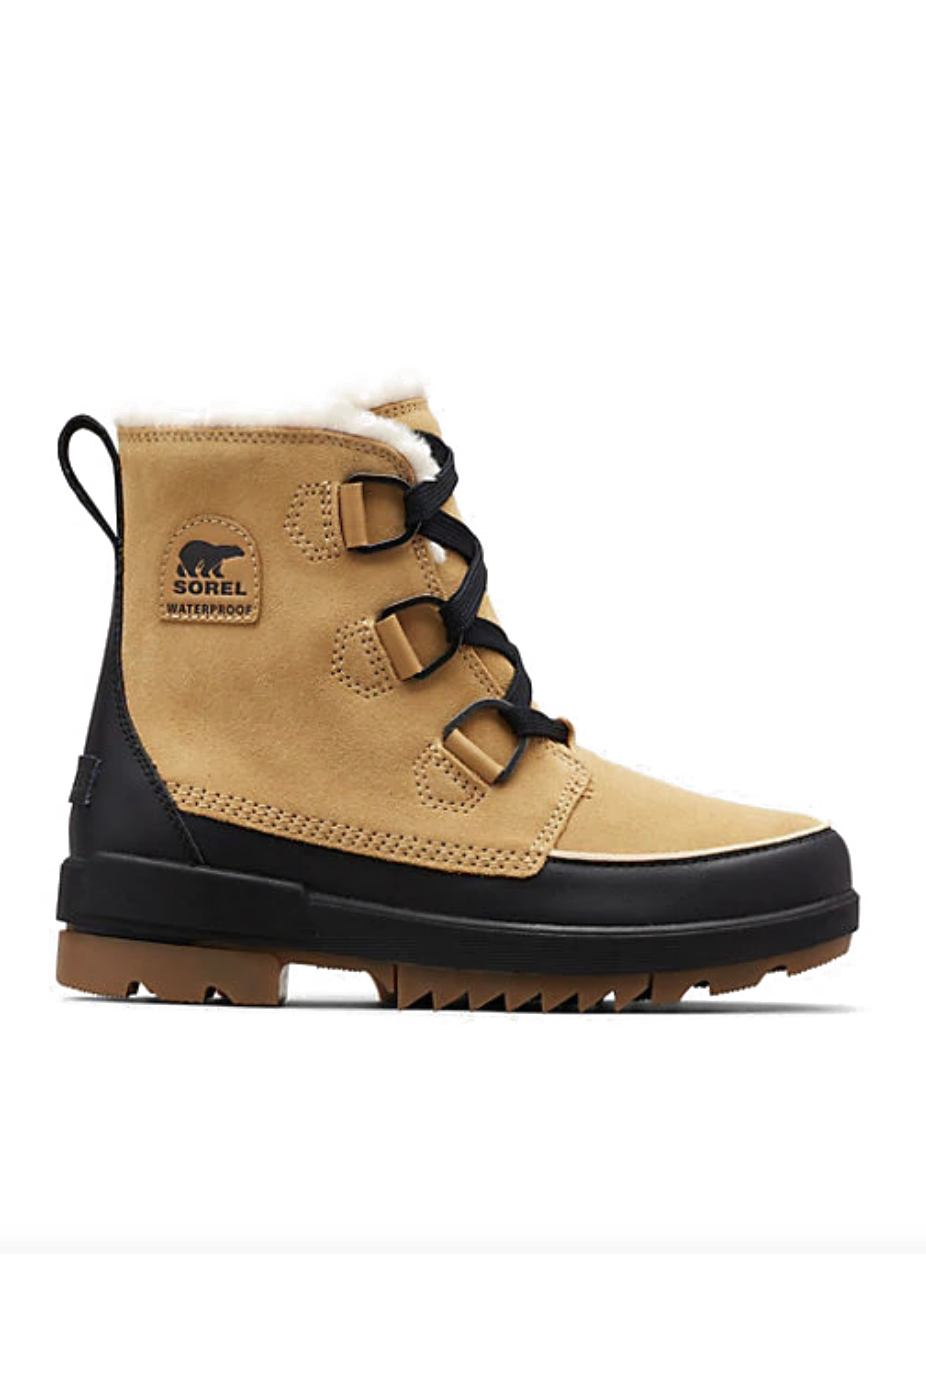 """<p><strong>Sorel</strong></p><p>sorel.com</p><p><strong>$130.00</strong></p><p><a href=""""https://go.redirectingat.com?id=74968X1596630&url=https%3A%2F%2Fwww.sorel.com%2Fwomens-tivoli-iv-boot-1870091.html%3Fdwvar_1870091_variationColor%3D373%26cgid%3Dwomen-boots&sref=https%3A%2F%2Fwww.marieclaire.com%2Ffashion%2Fg33469548%2Fbest-ankle-boots-for-women%2F"""" rel=""""nofollow noopener"""" target=""""_blank"""" data-ylk=""""slk:SHOP IT"""" class=""""link rapid-noclick-resp"""">SHOP IT</a></p><p>For those who live in climates that warrant a more heavy-duty ankle boot, or if you just like furry shoes, get these insulated waterproof suede and leather booties. They have a no-slip rubber sole and a supportive footbed, so you can conquer that patch of black ice. </p>"""